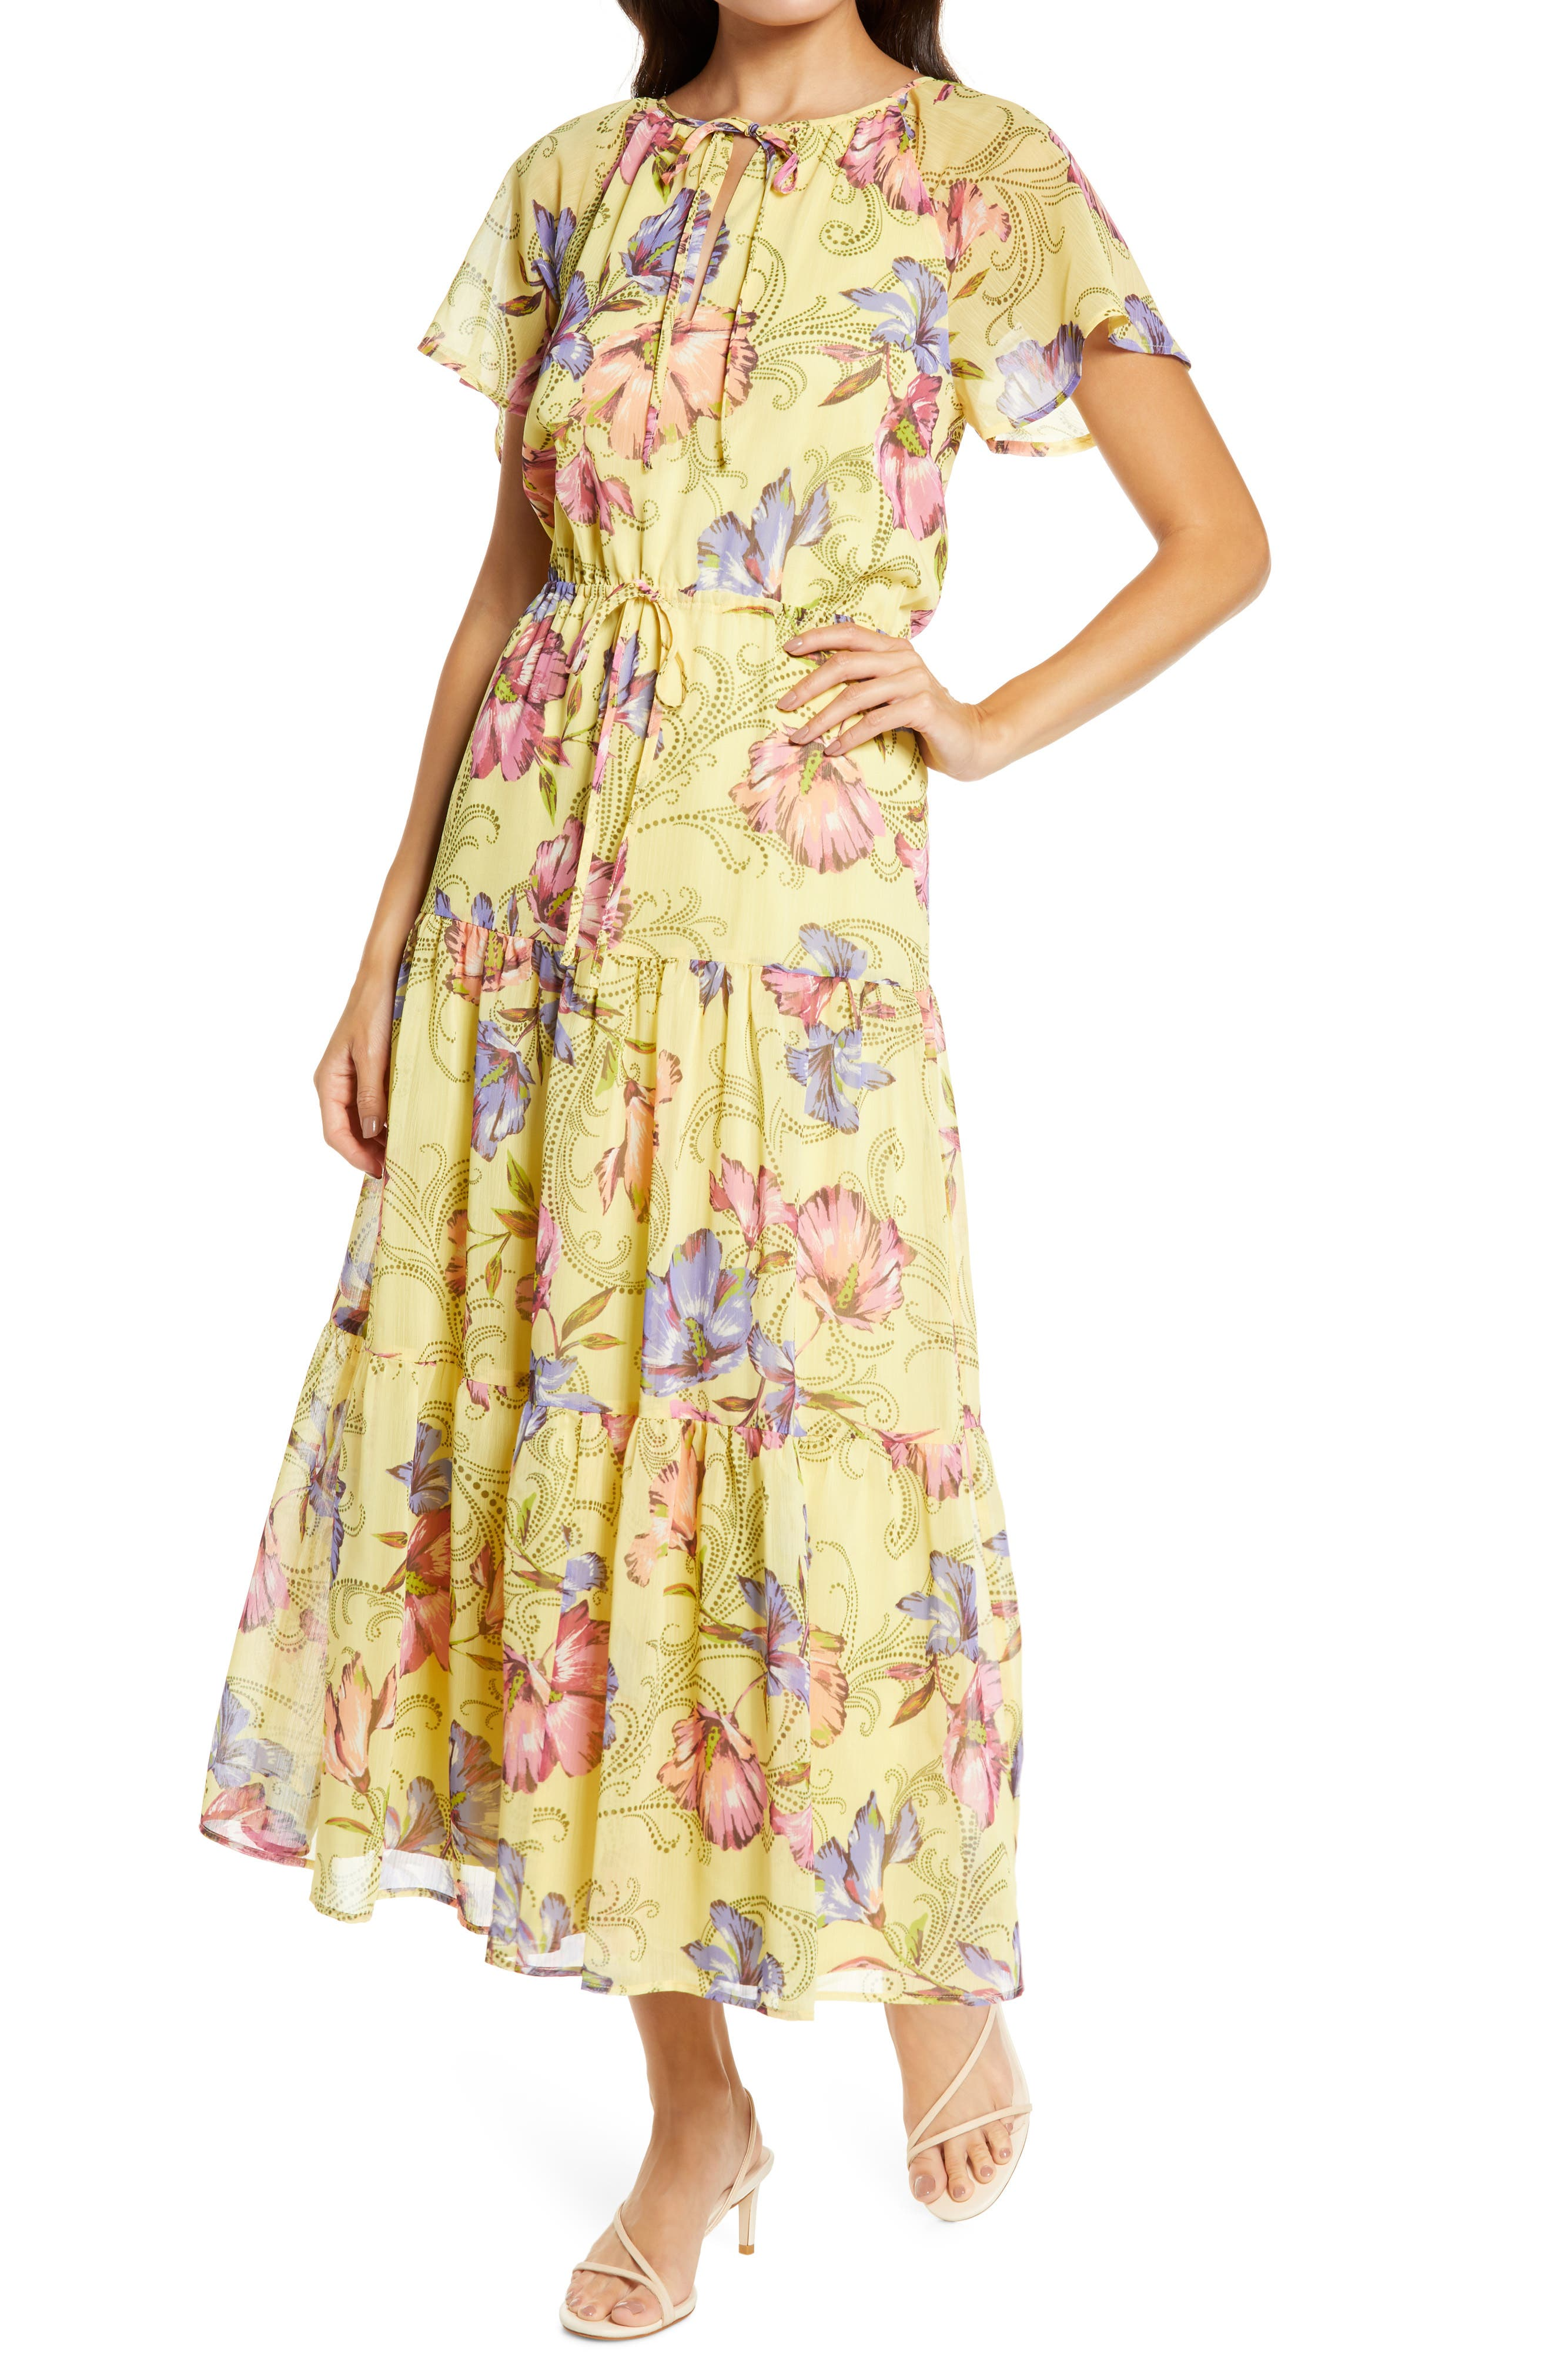 70s Outfits – 70s Style Ideas for Women Womens Chelsea28 Tie Front Floral Print Maxi Dress $139.00 AT vintagedancer.com